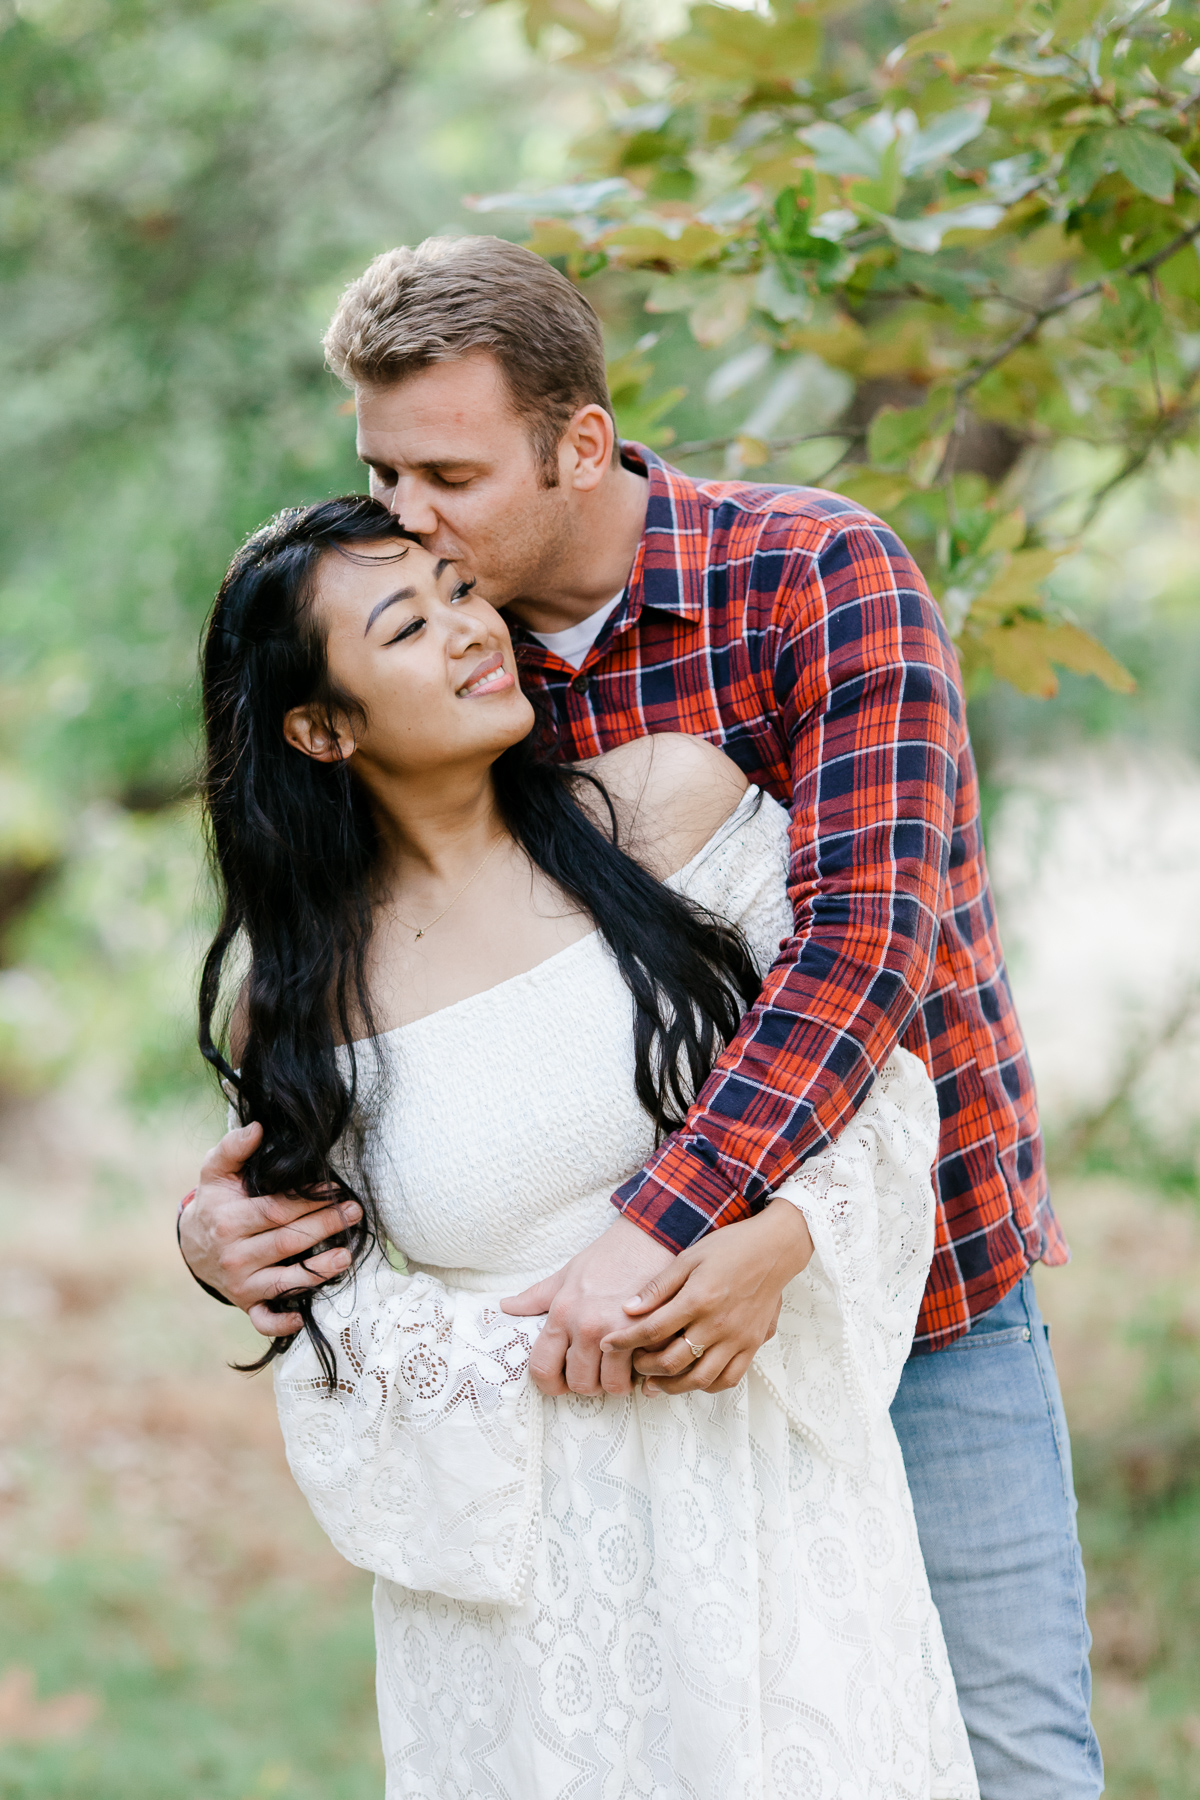 IMG 4272 - Lei and Matthew | Engaged | San Diego wedding photographer | Los Penasquitos Canyon Preserve